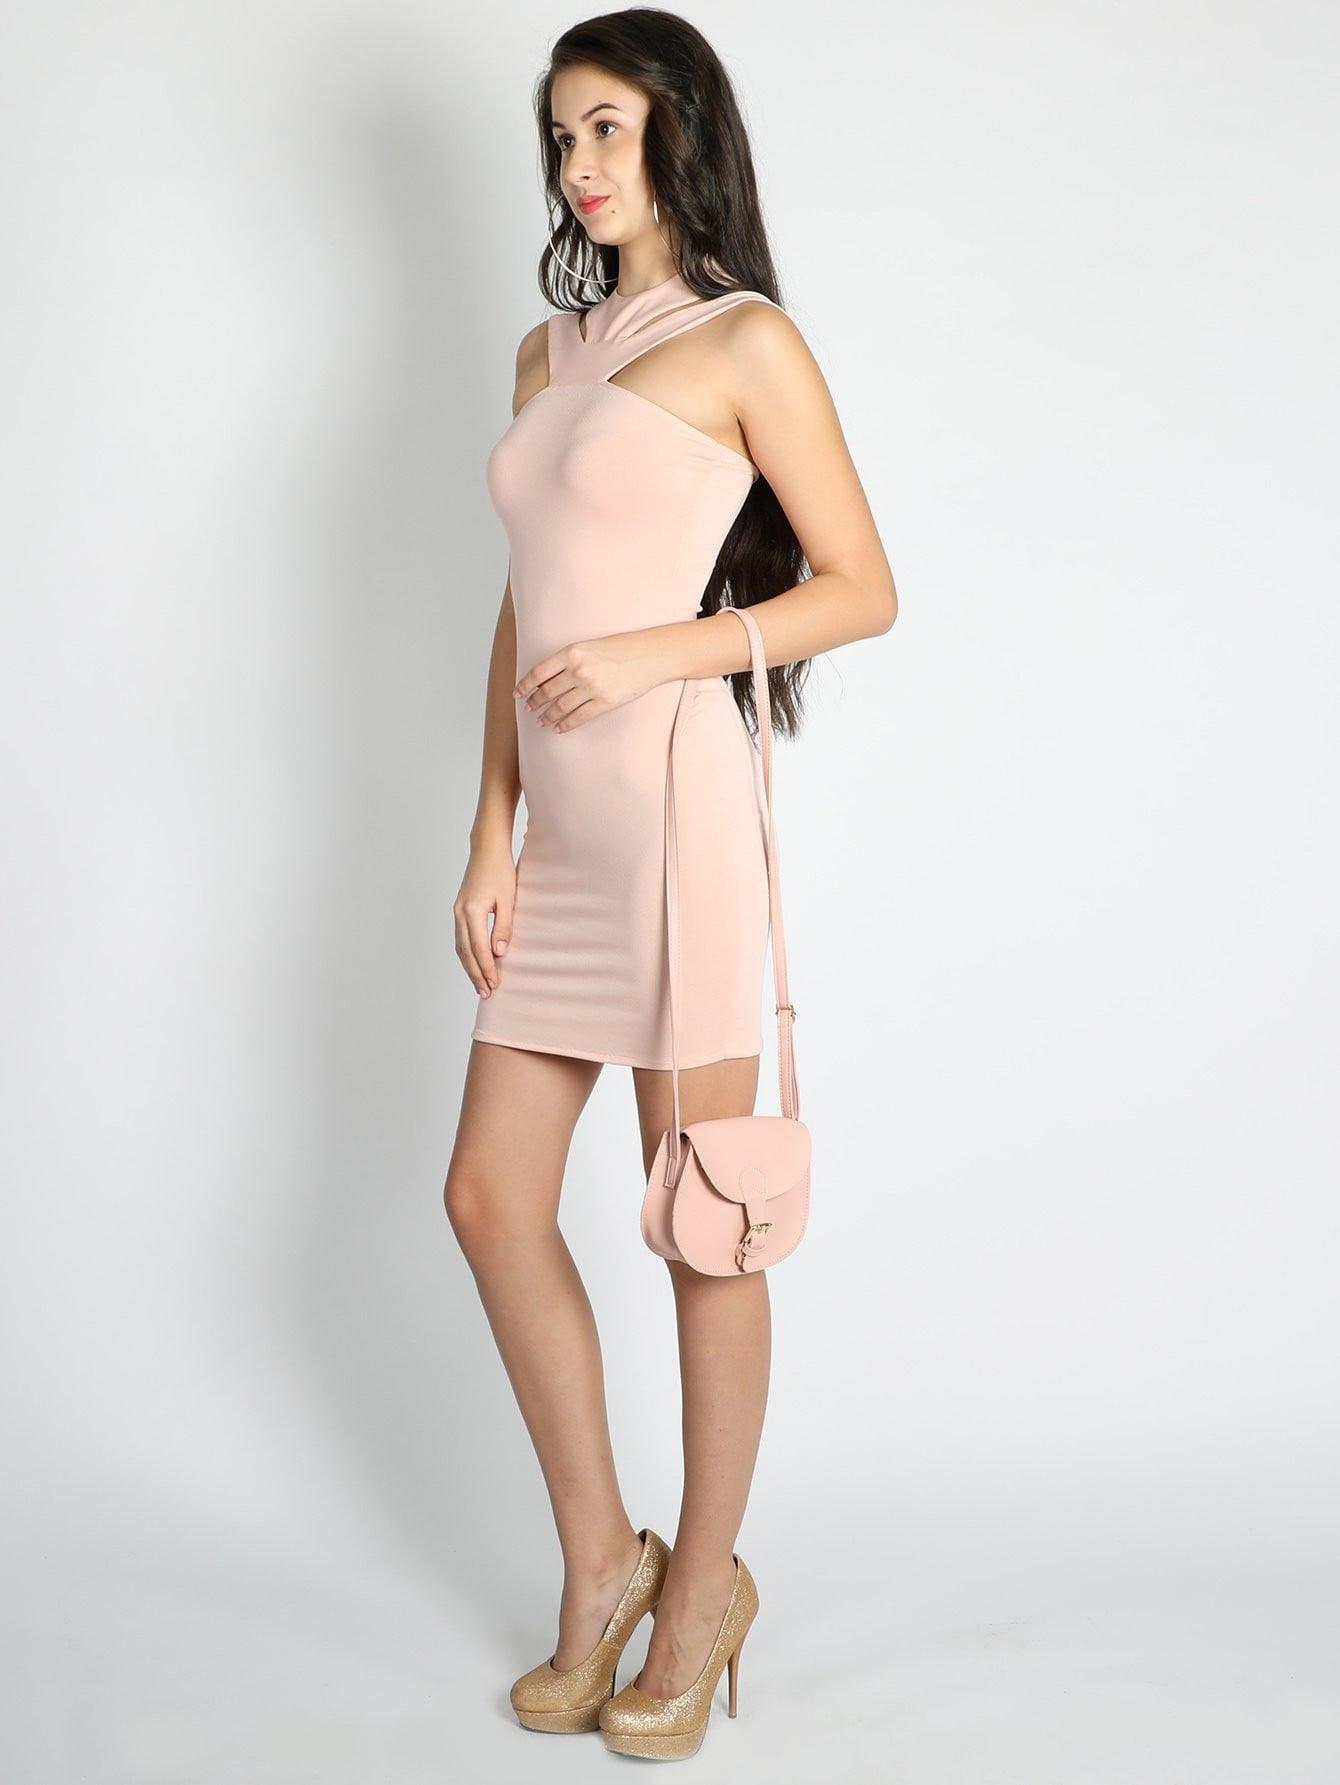 Halter Neck Straps Bodycon Dress - Dresses - Zooomberg - Zoomberg